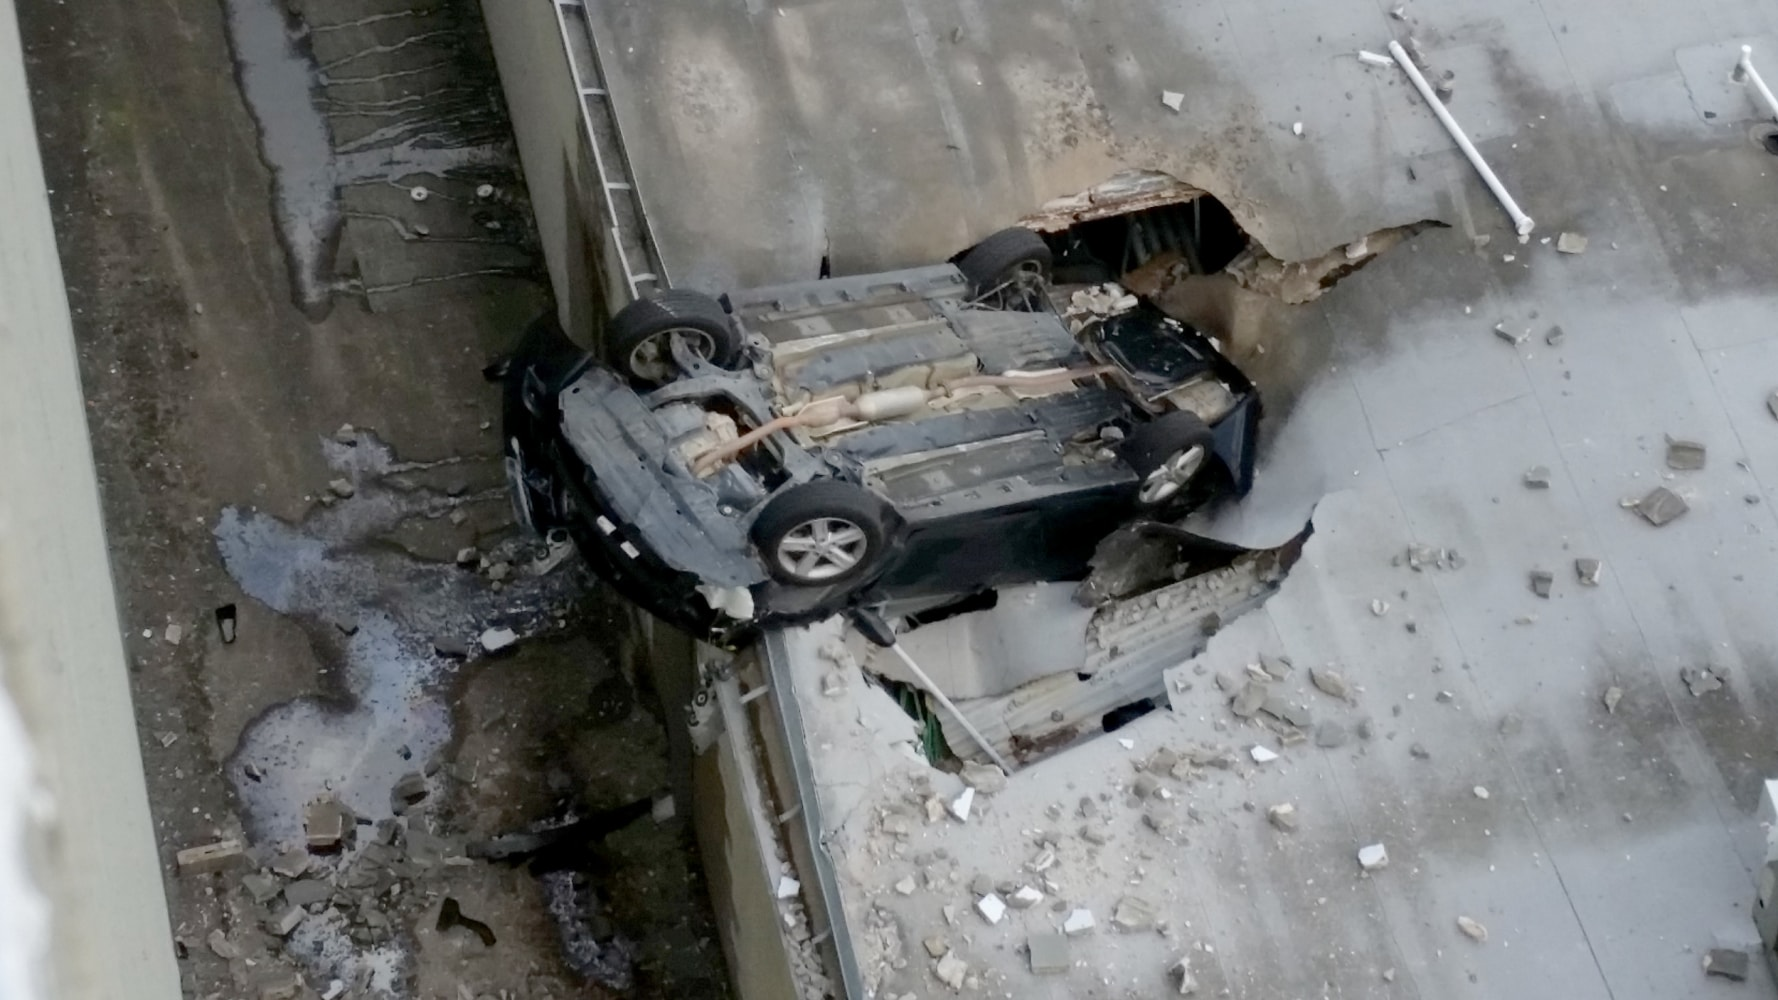 Teen's vehicle plunges off Houston parking garage, lands upside down